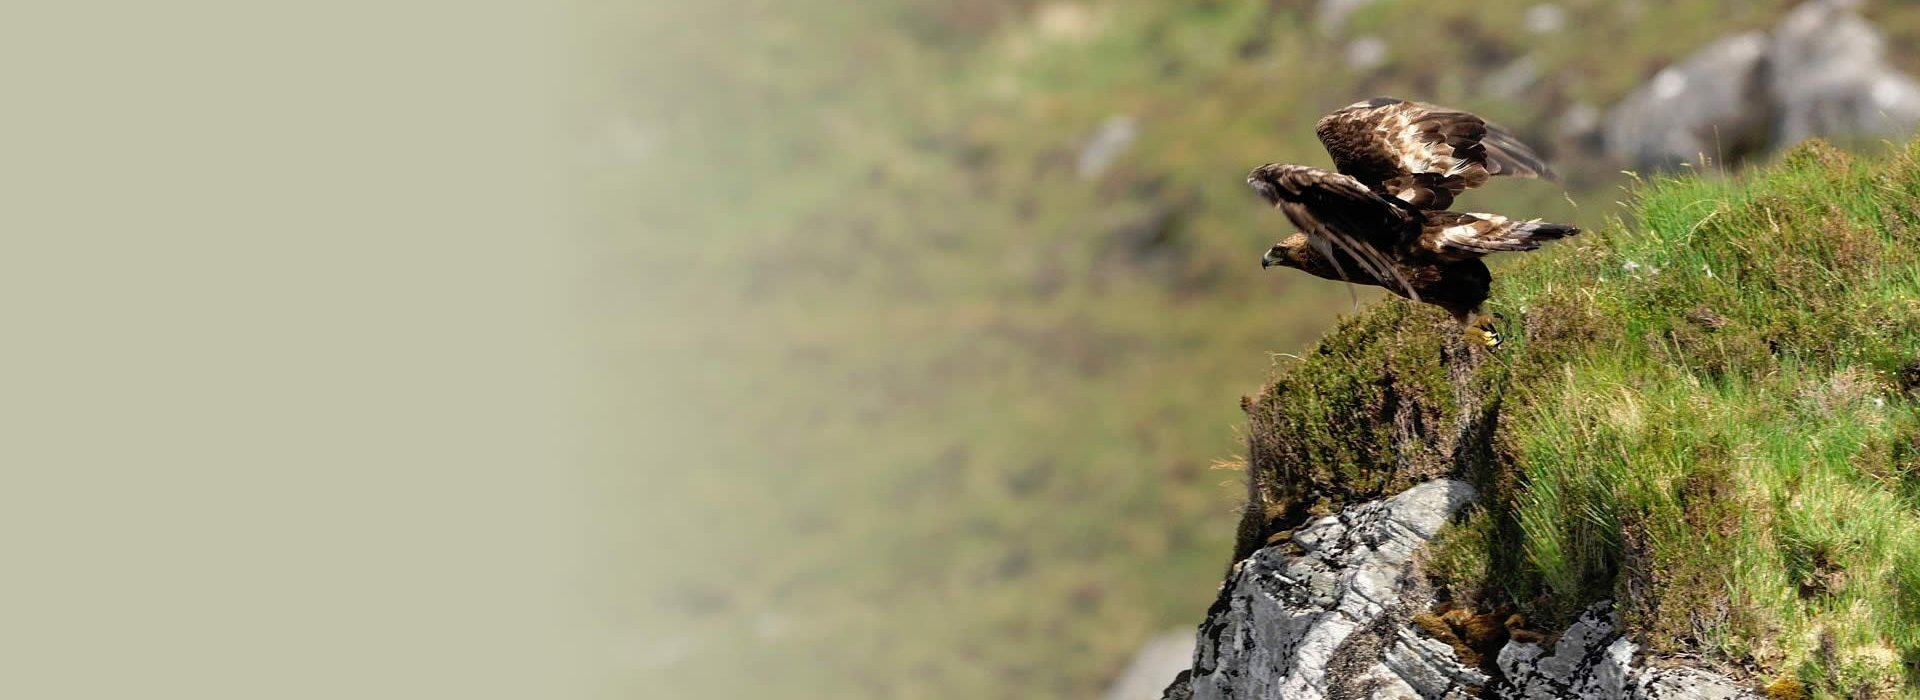 An eagle taking off from a cliff edge